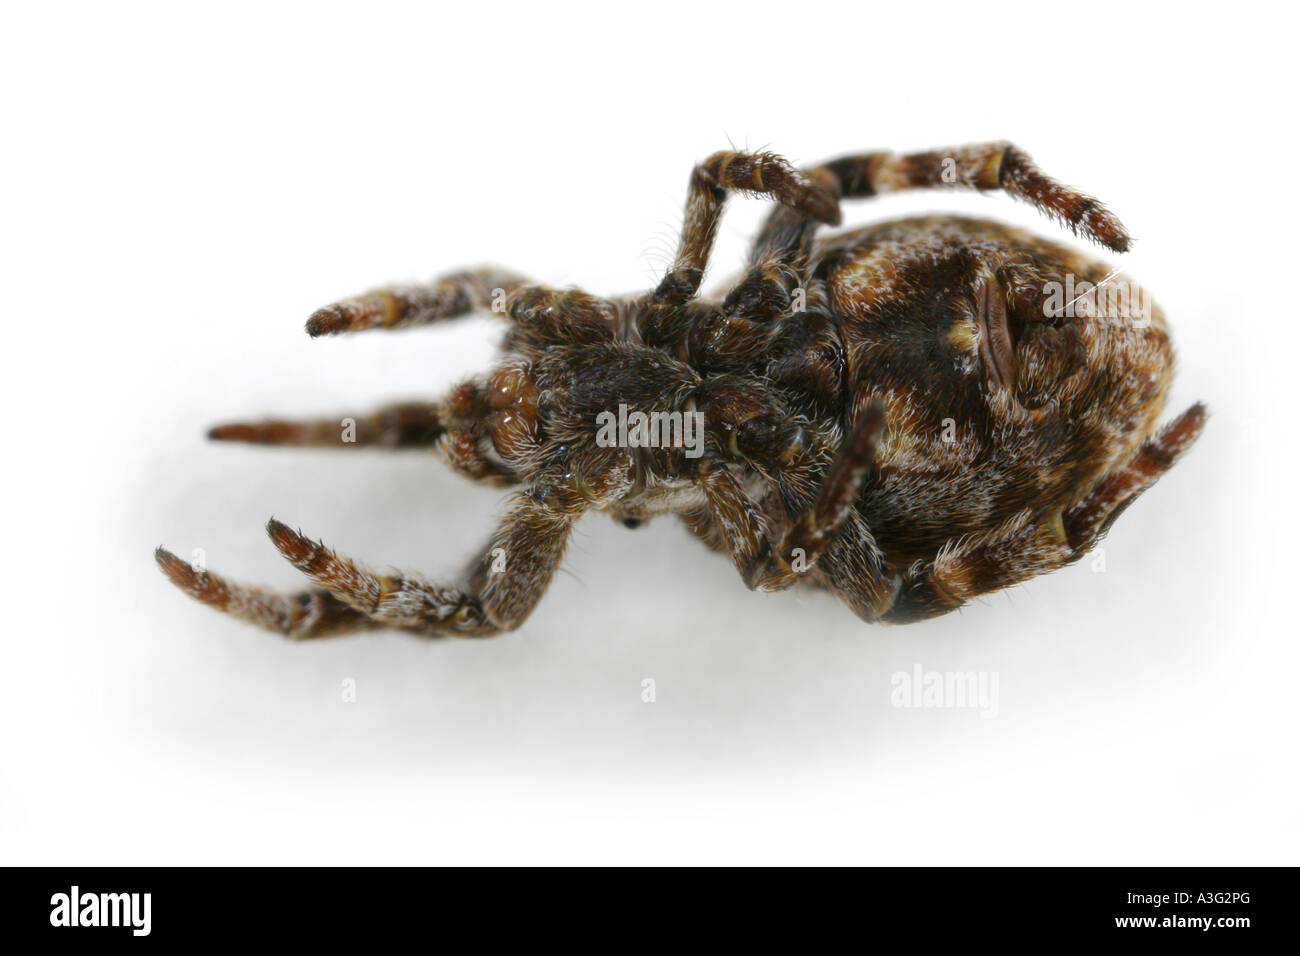 Hyptiotes paradoxus spider, family Uloboridae, on White Background. Hanging upside down. Stock Photo